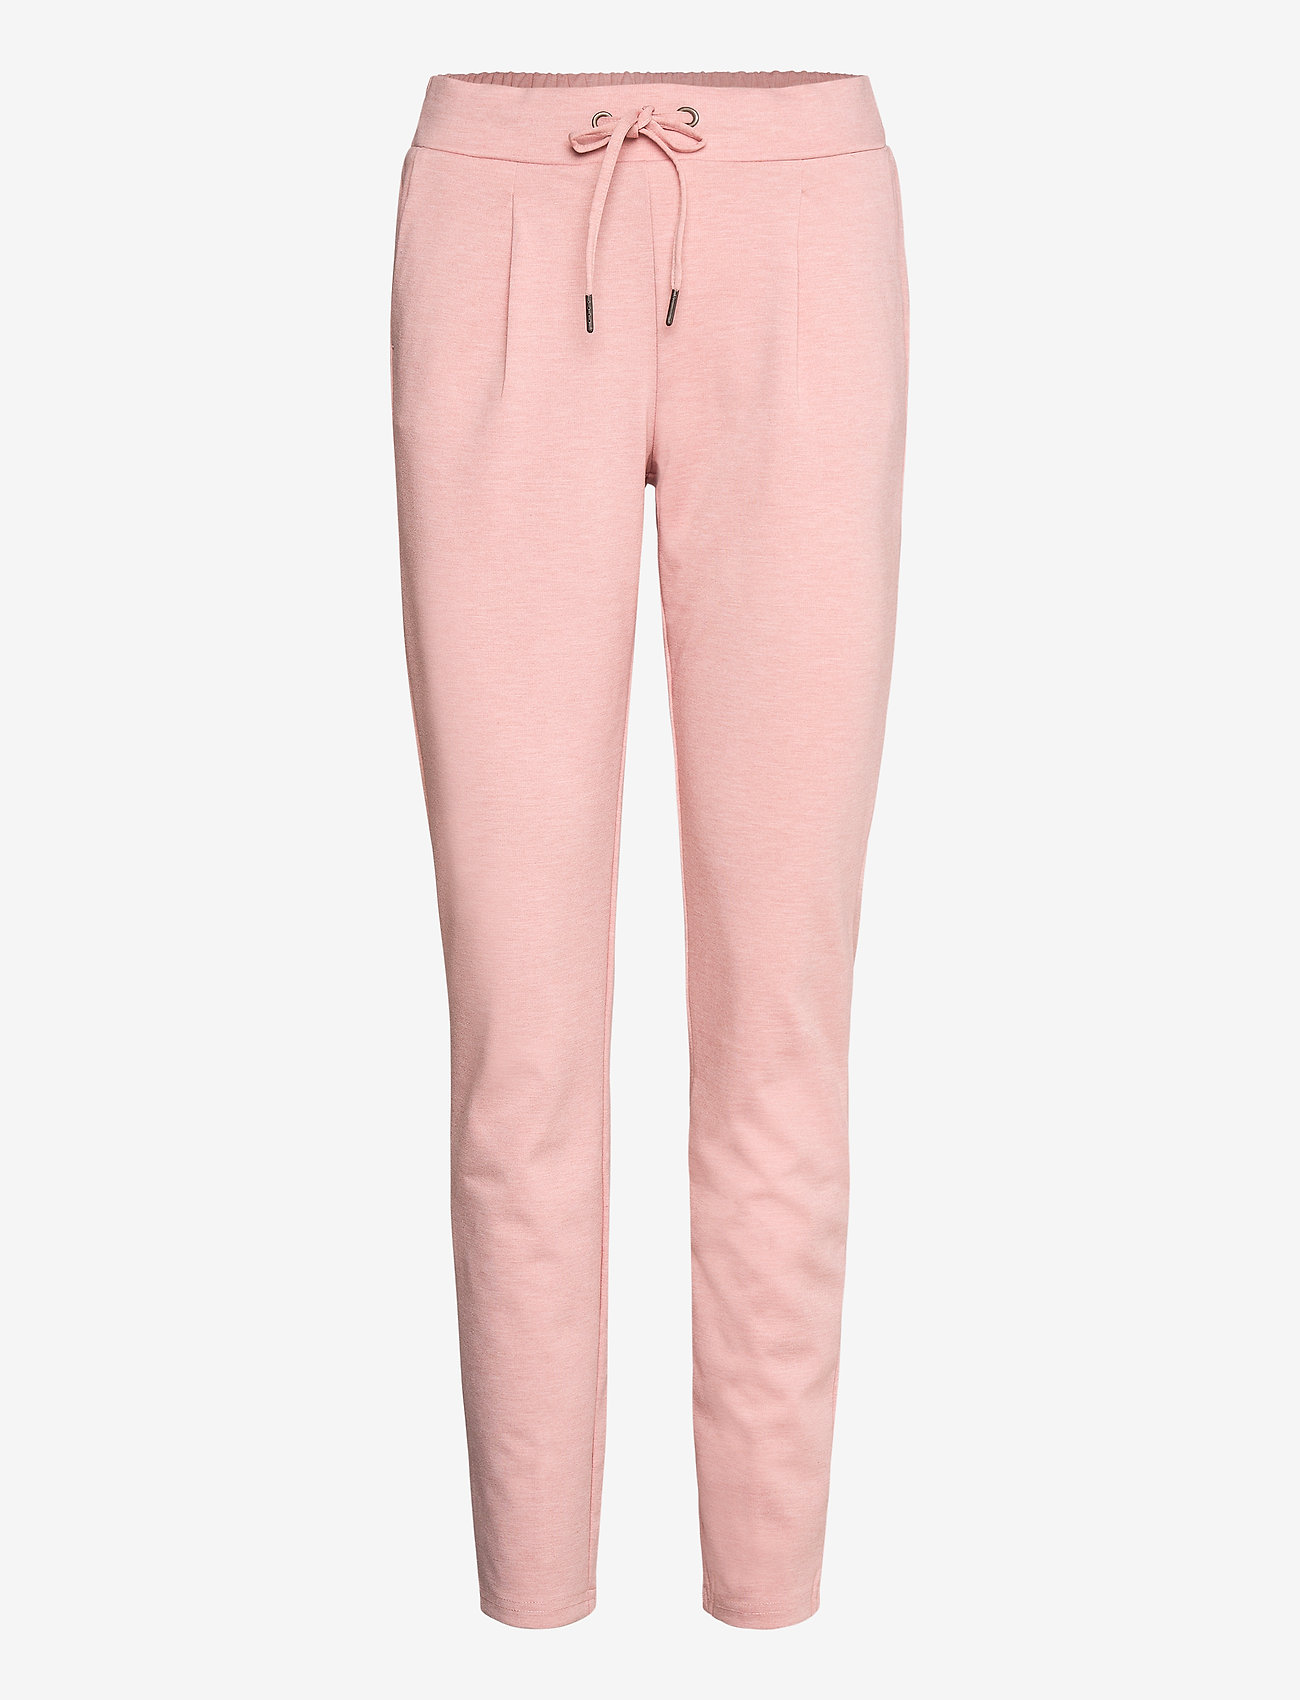 b.young - Rizetta pants 2 - Jersey - slim fit trousers - rose tan melange - 0